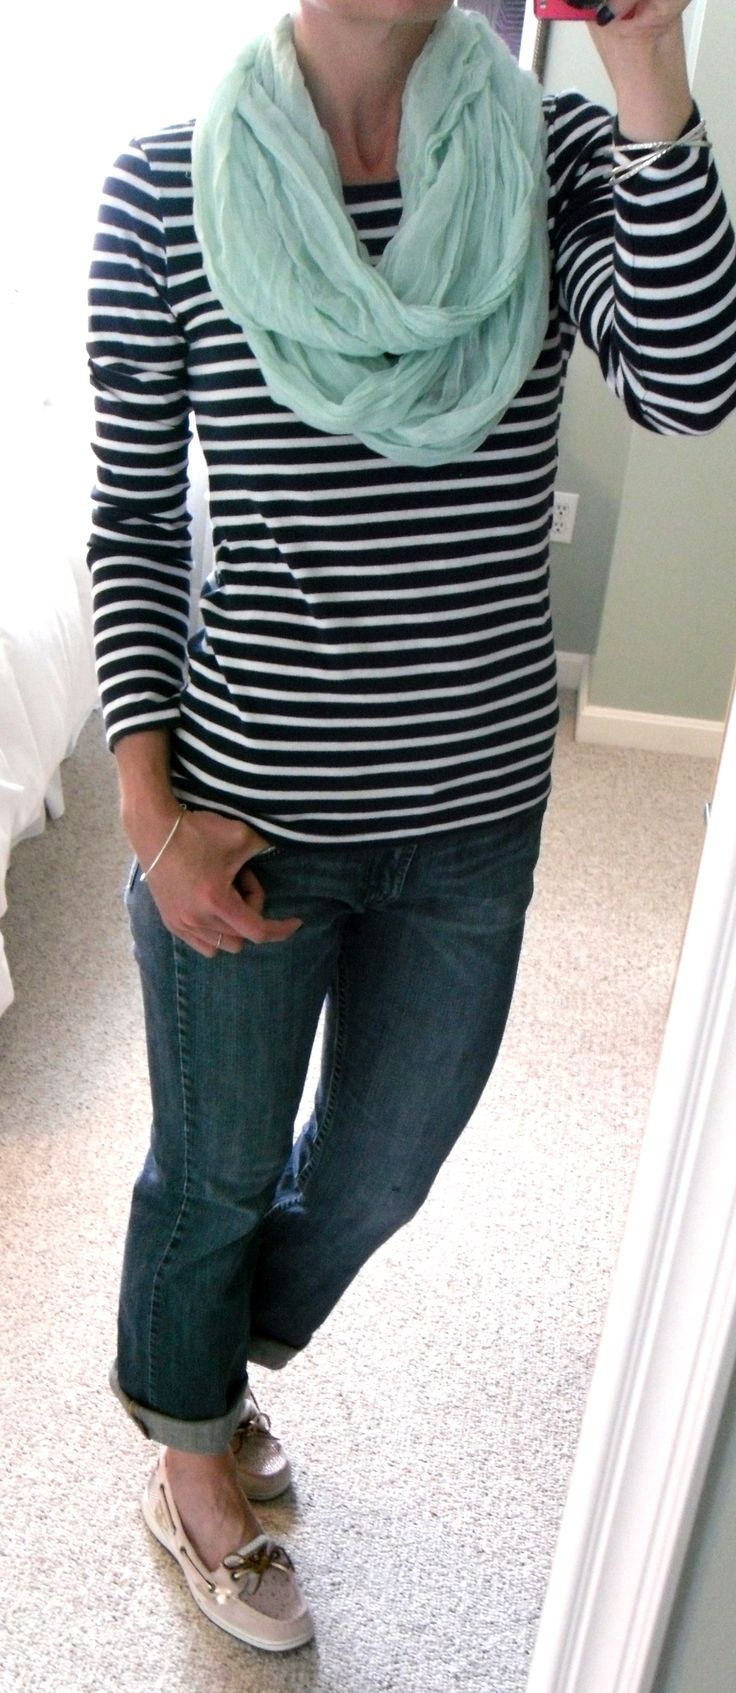 HM navy blue and white striped t-shirt, mint Figure 8 infinity scarf, cuffed Lucky Brand jeans, Sperry Angelfish top siders